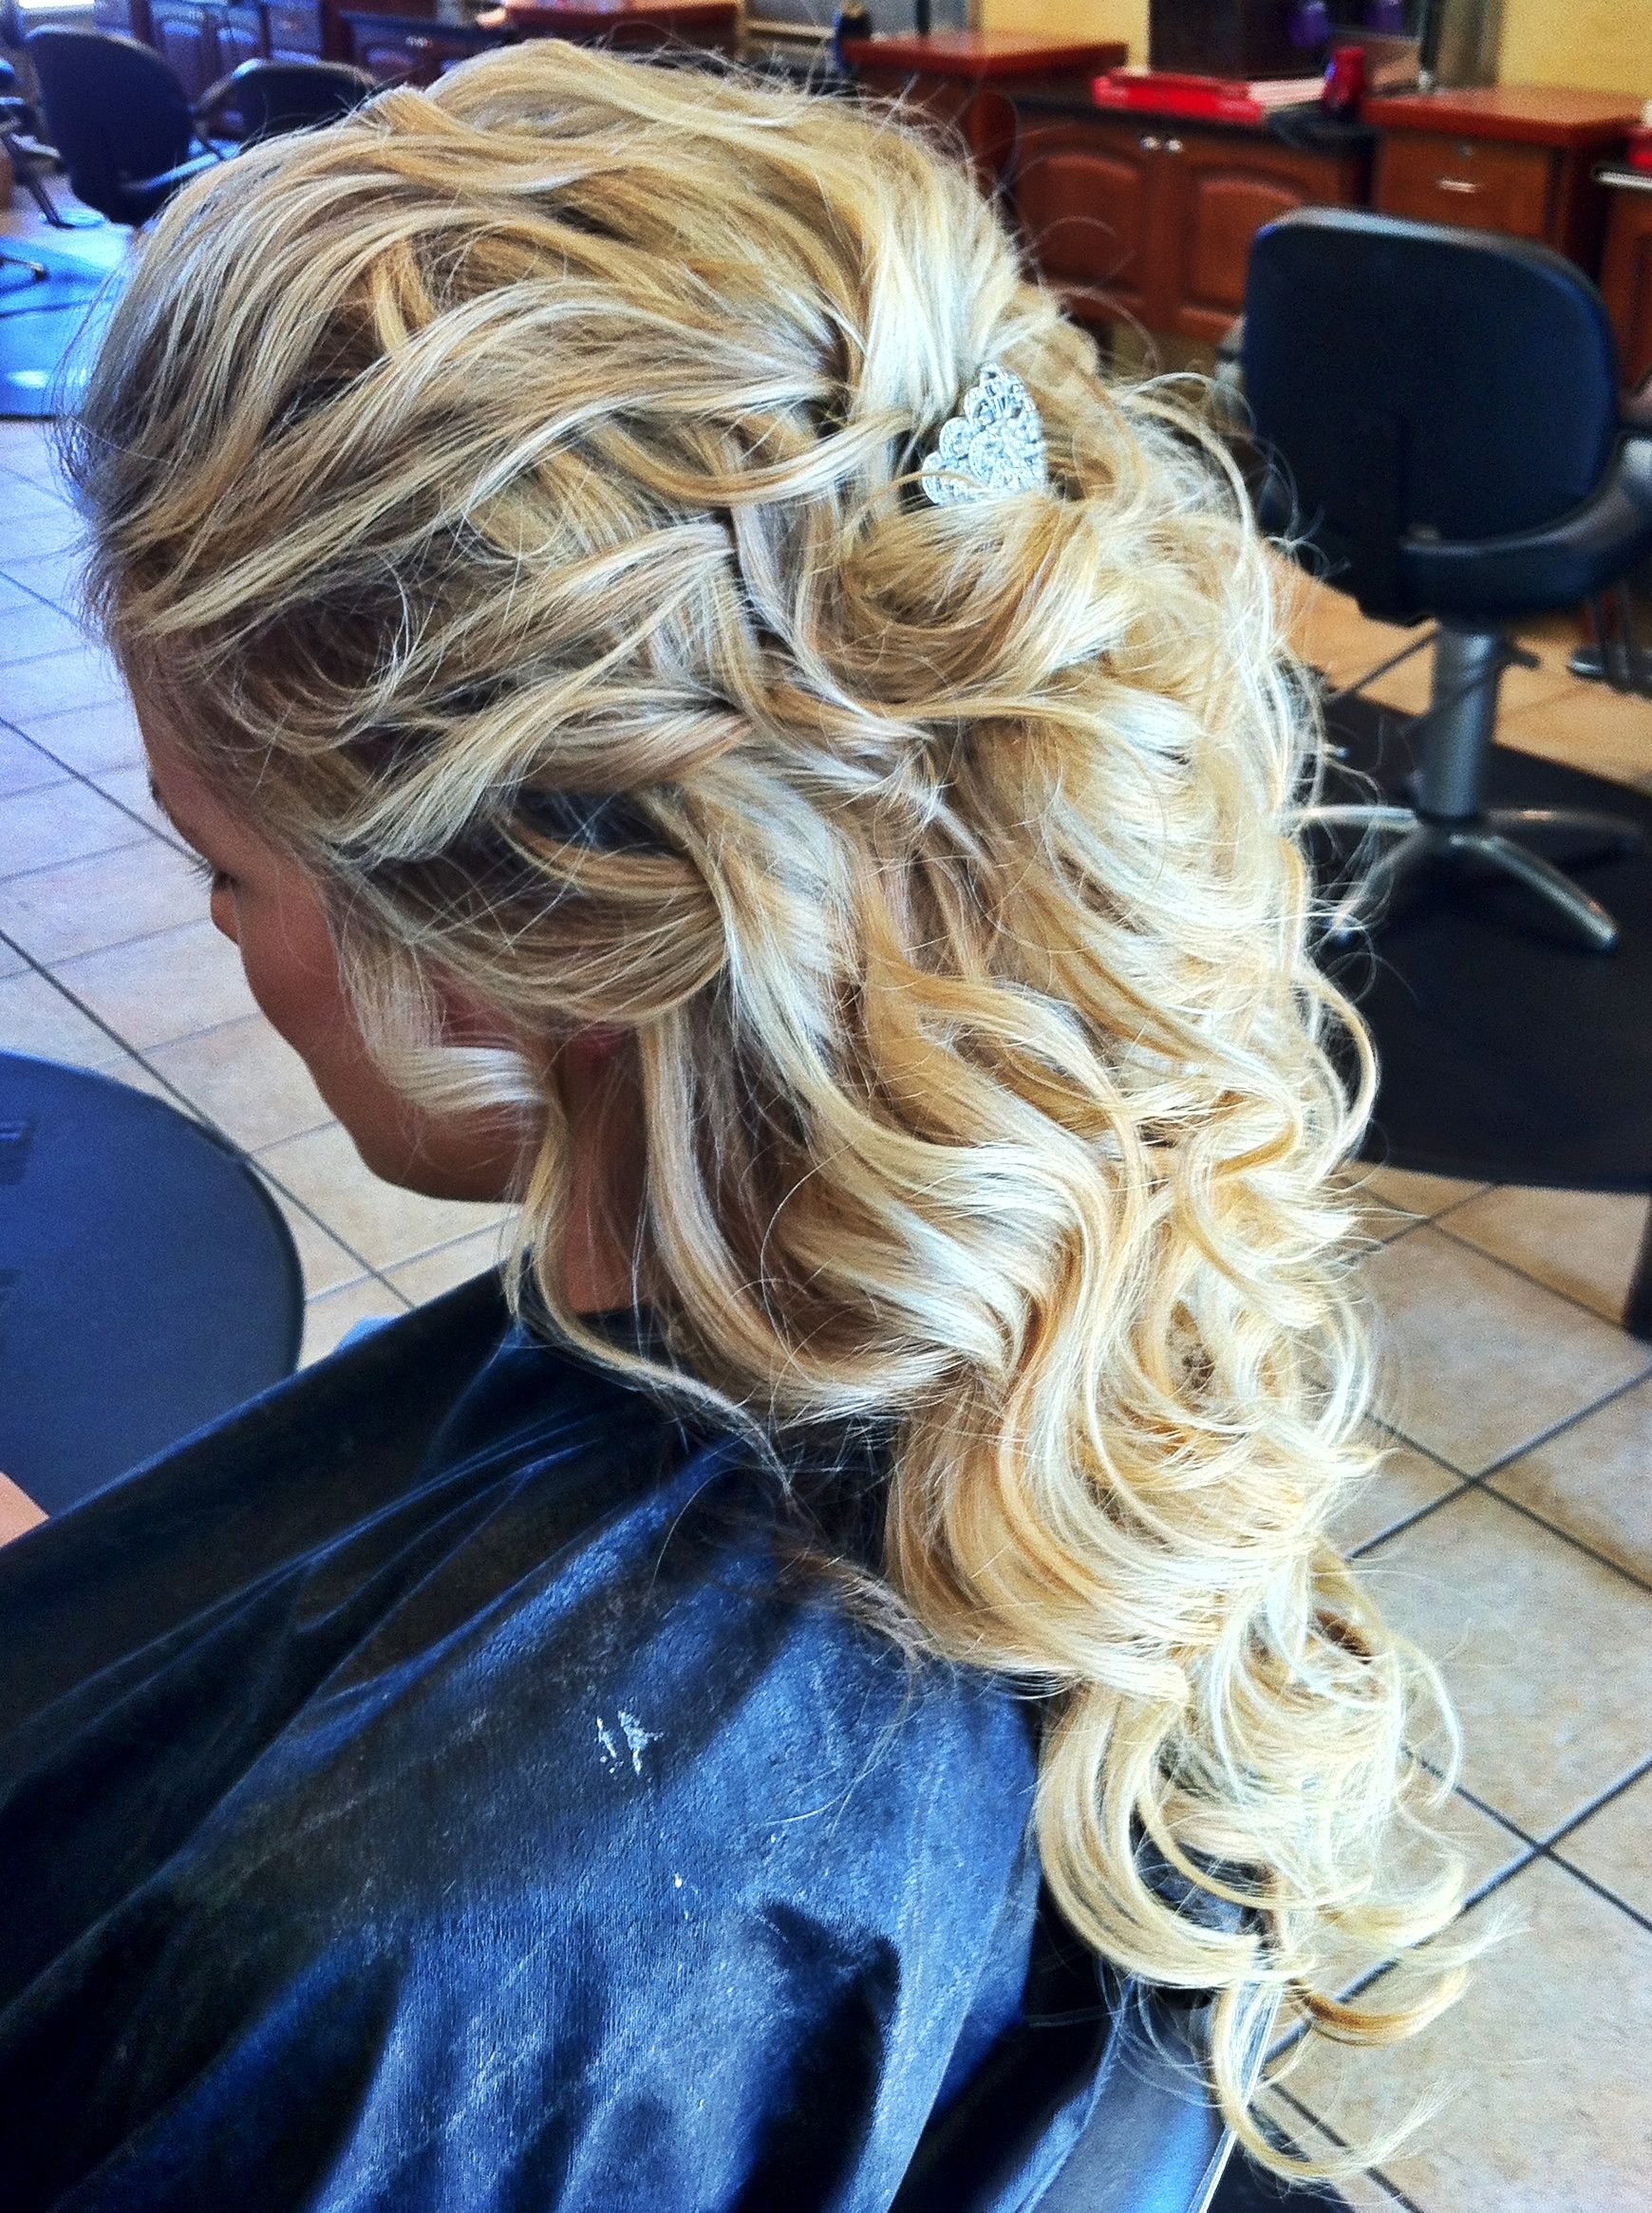 Hair and makeup by steph snow prom and hair style